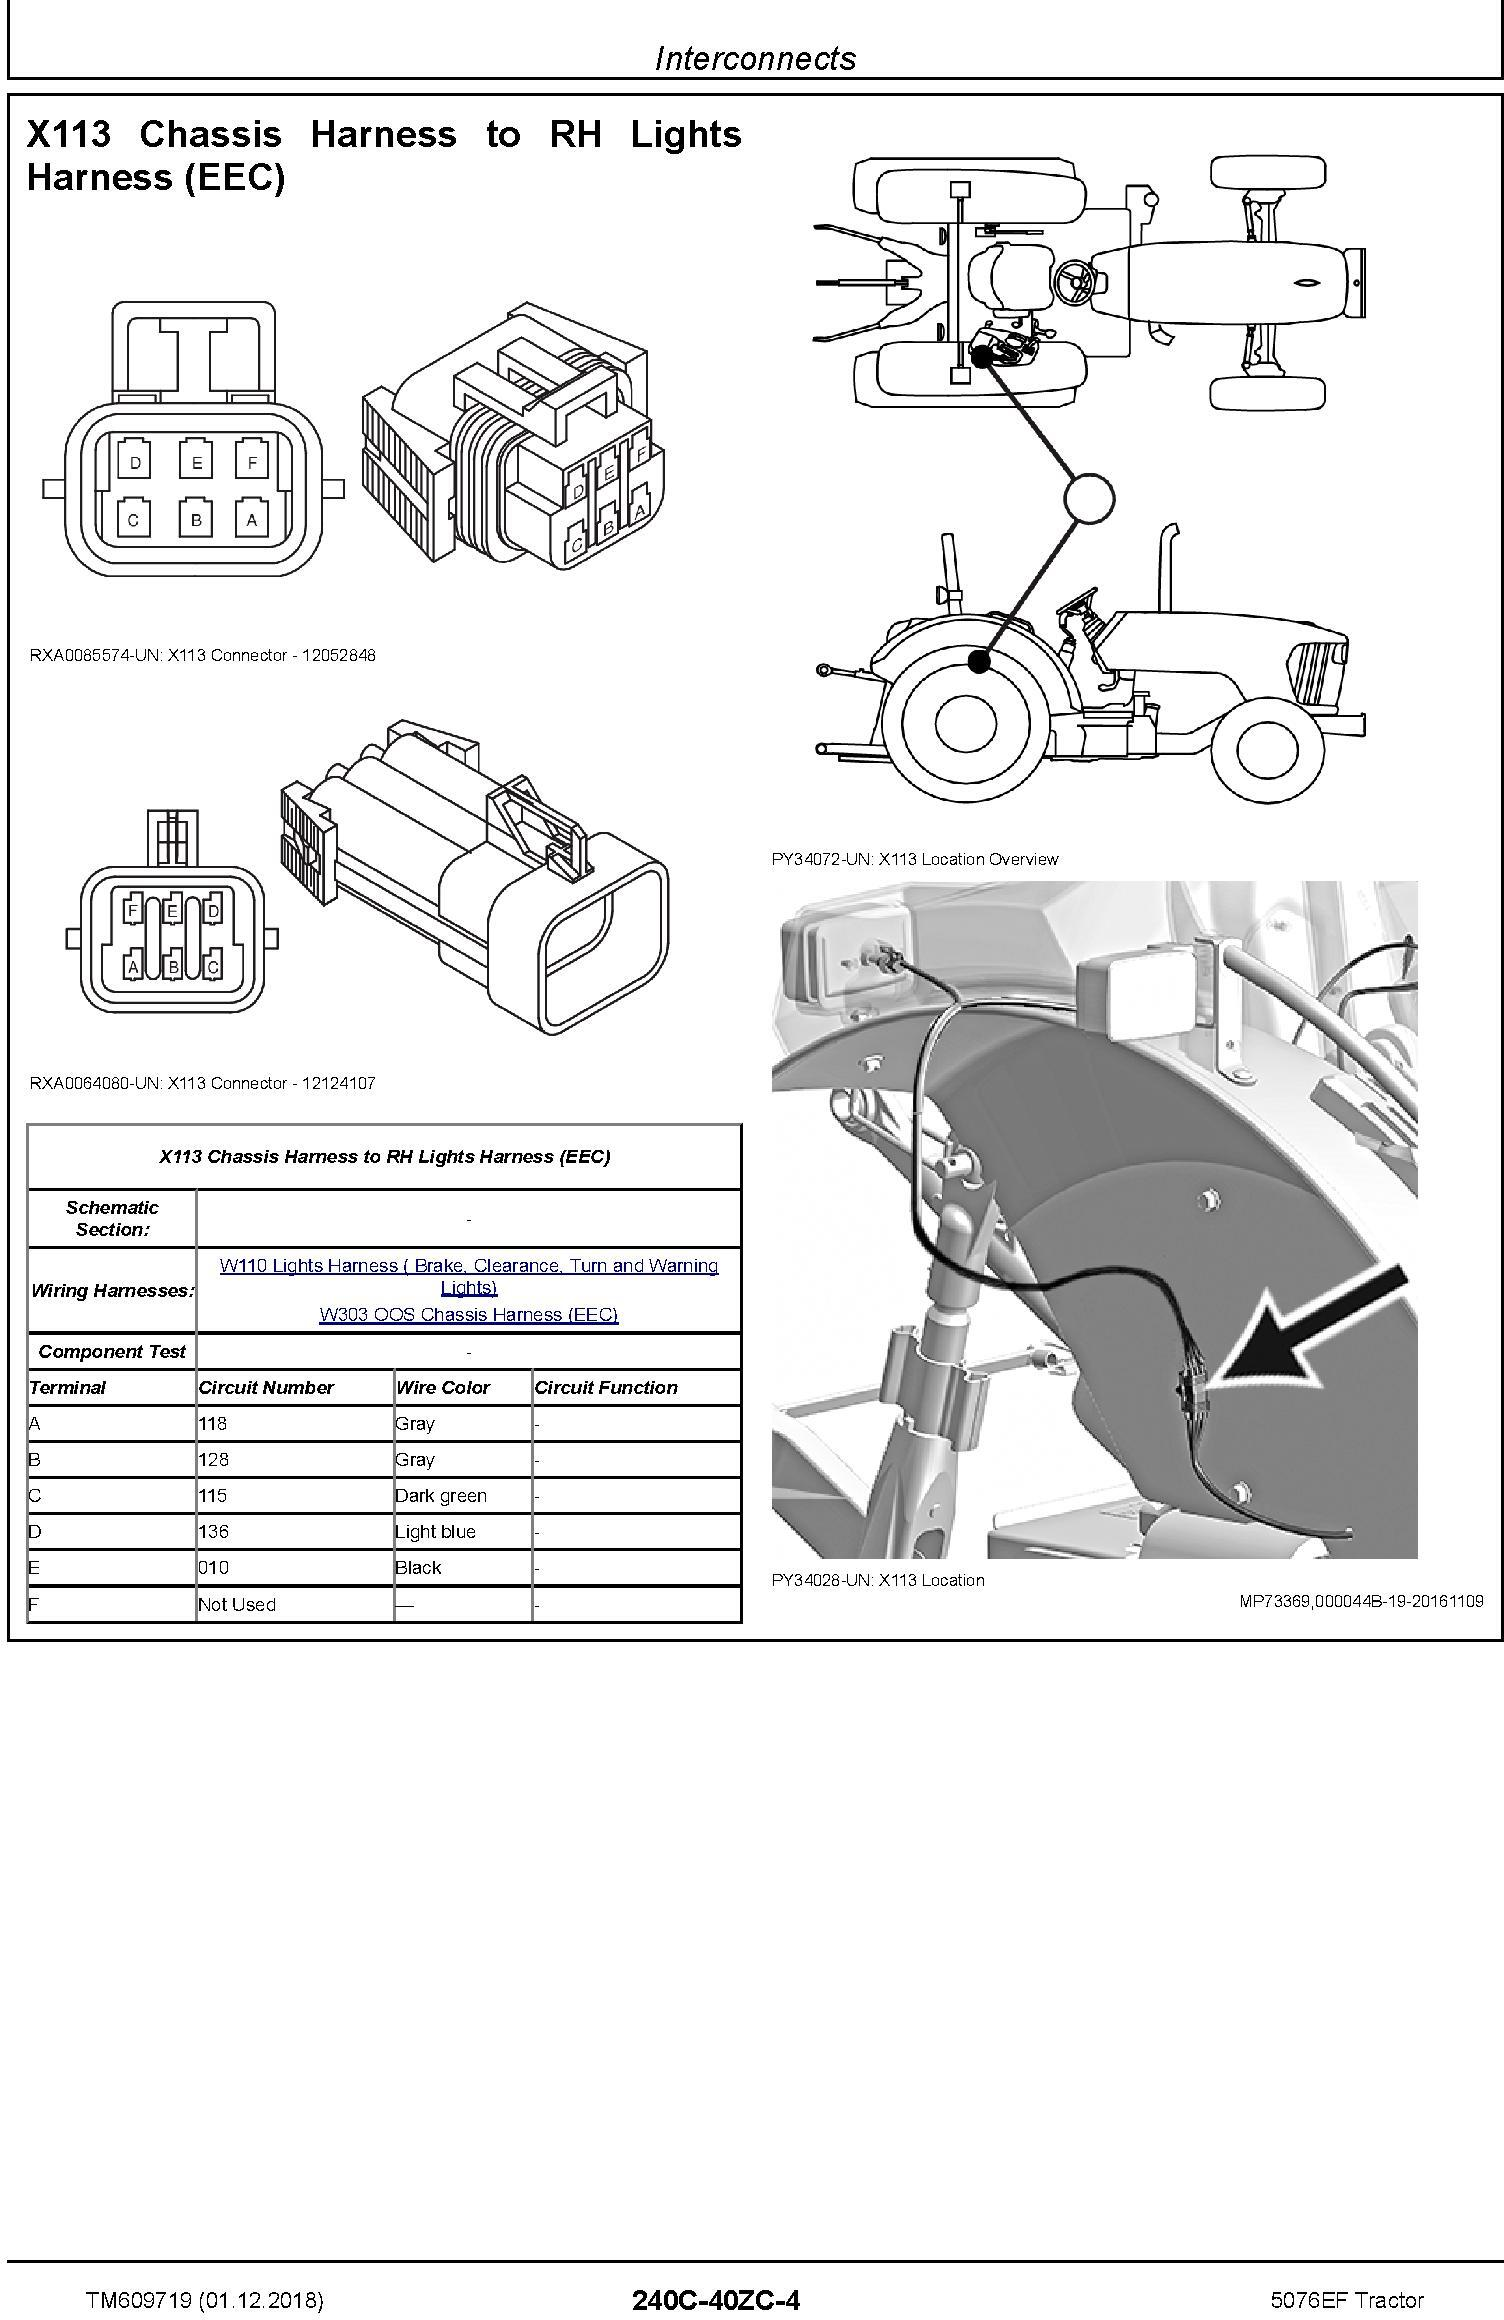 John Deere 5076EF Tractor Diagnostic Technical Service Manual (TM609719) - 2